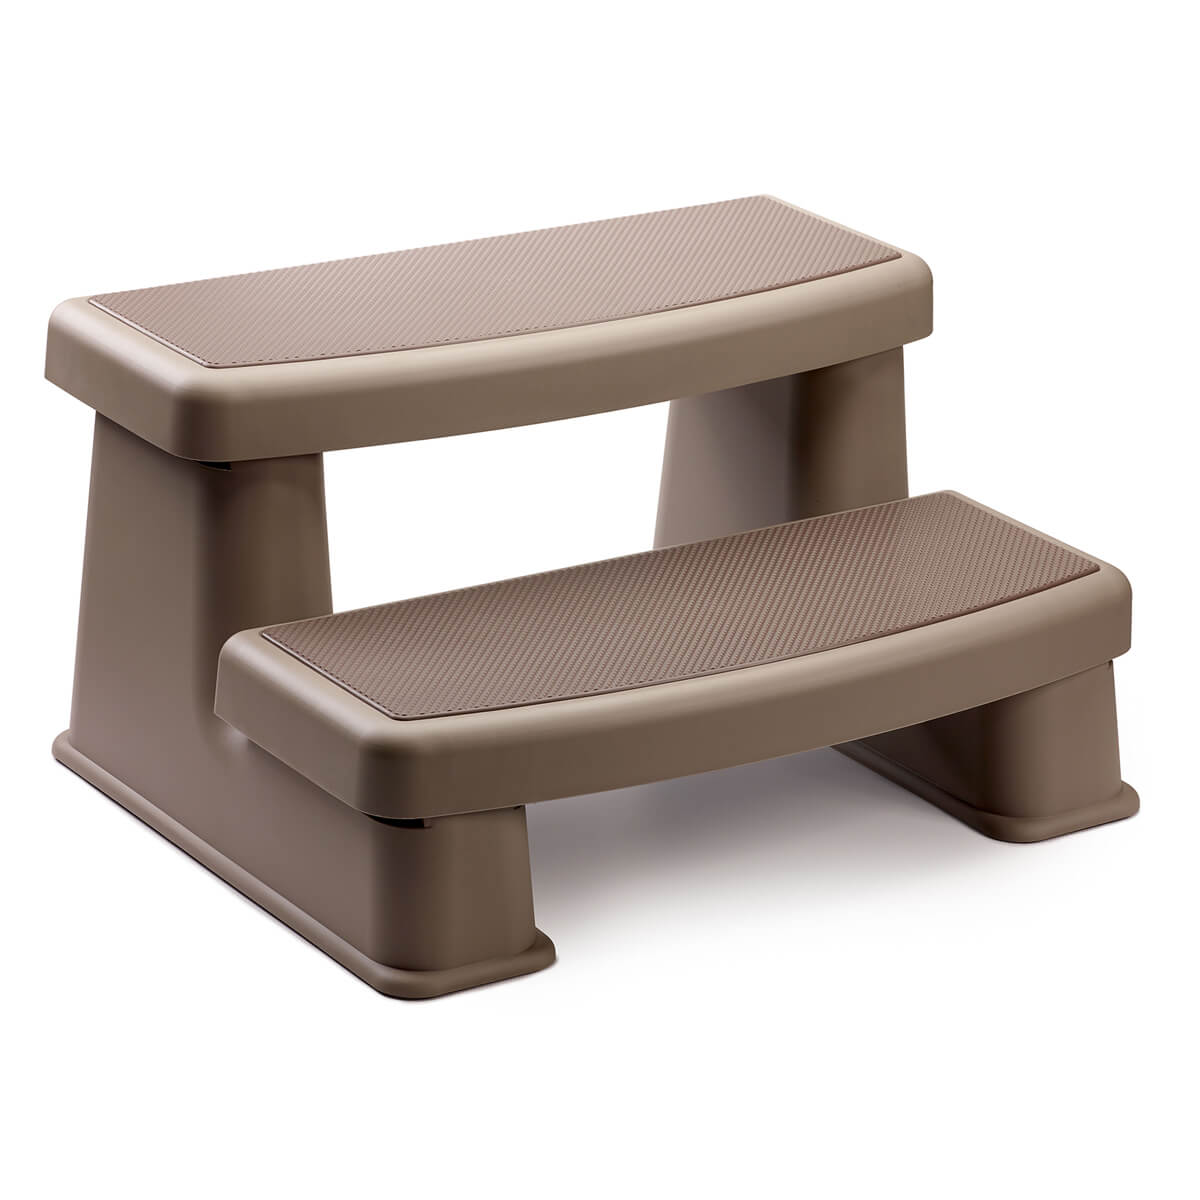 Caldera® Spas 32″ Polymer Hot Tub Steps Product Image